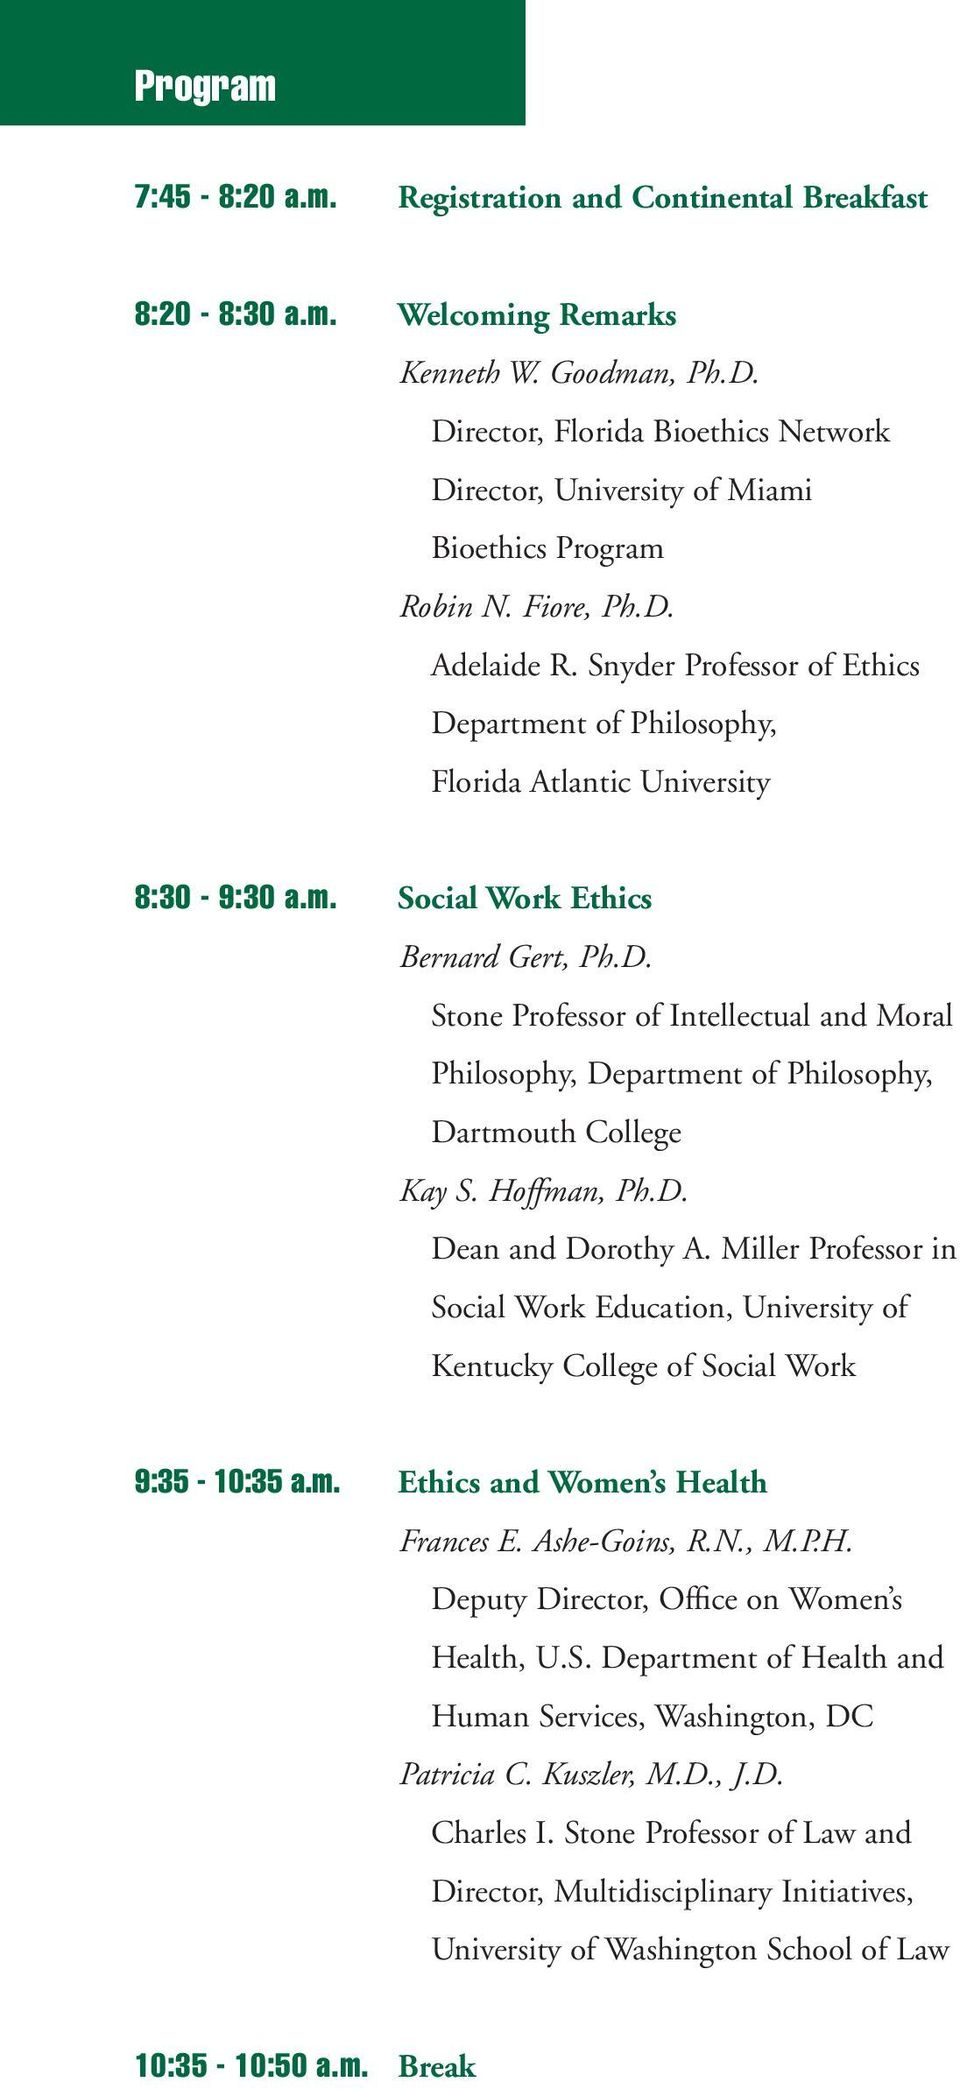 Snyder Professor of Ethics Department of Philosophy, Florida Atlantic University 8:30-9:30 a.m. Social Work Ethics Bernard Gert, Ph.D. Stone Professor of Intellectual and Moral Philosophy, Department of Philosophy, Dartmouth College Kay S.